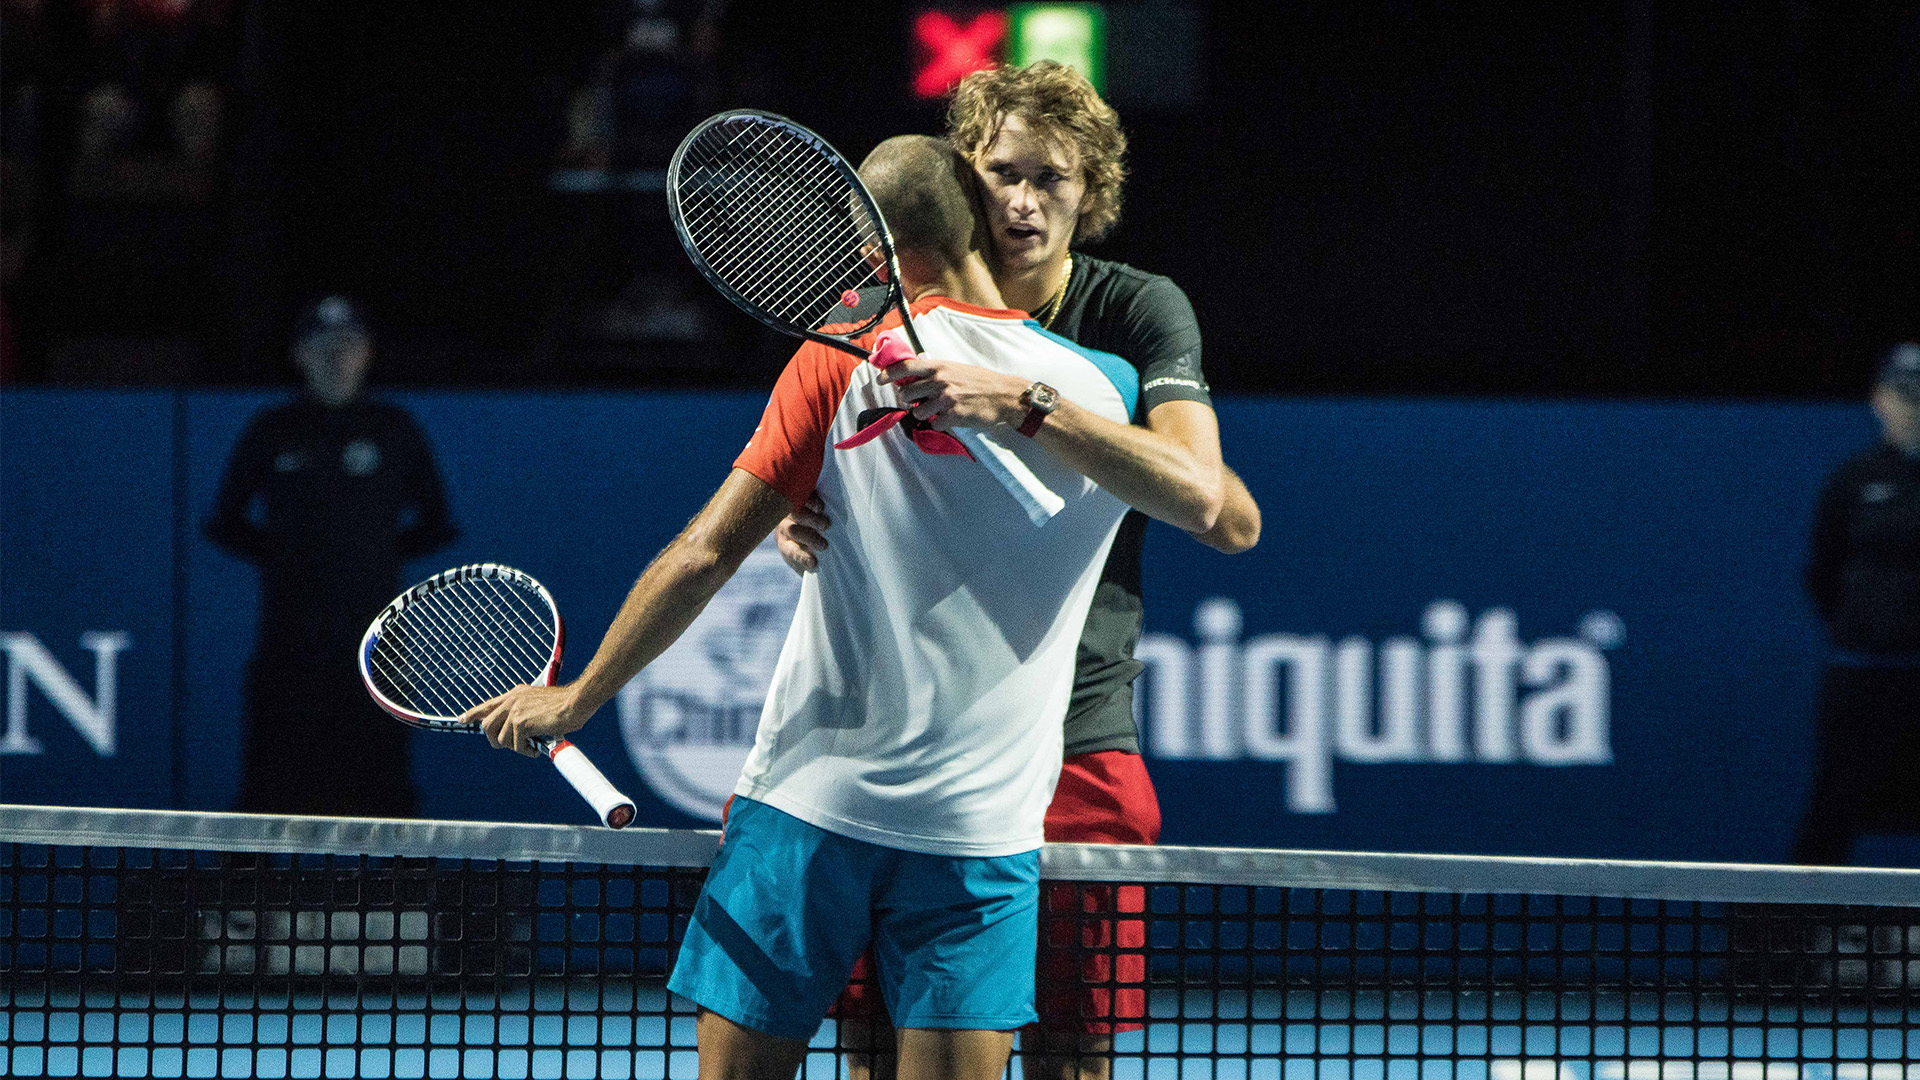 Alexander Zverev, #5 in the ATP rankings congratulates Marius Copil